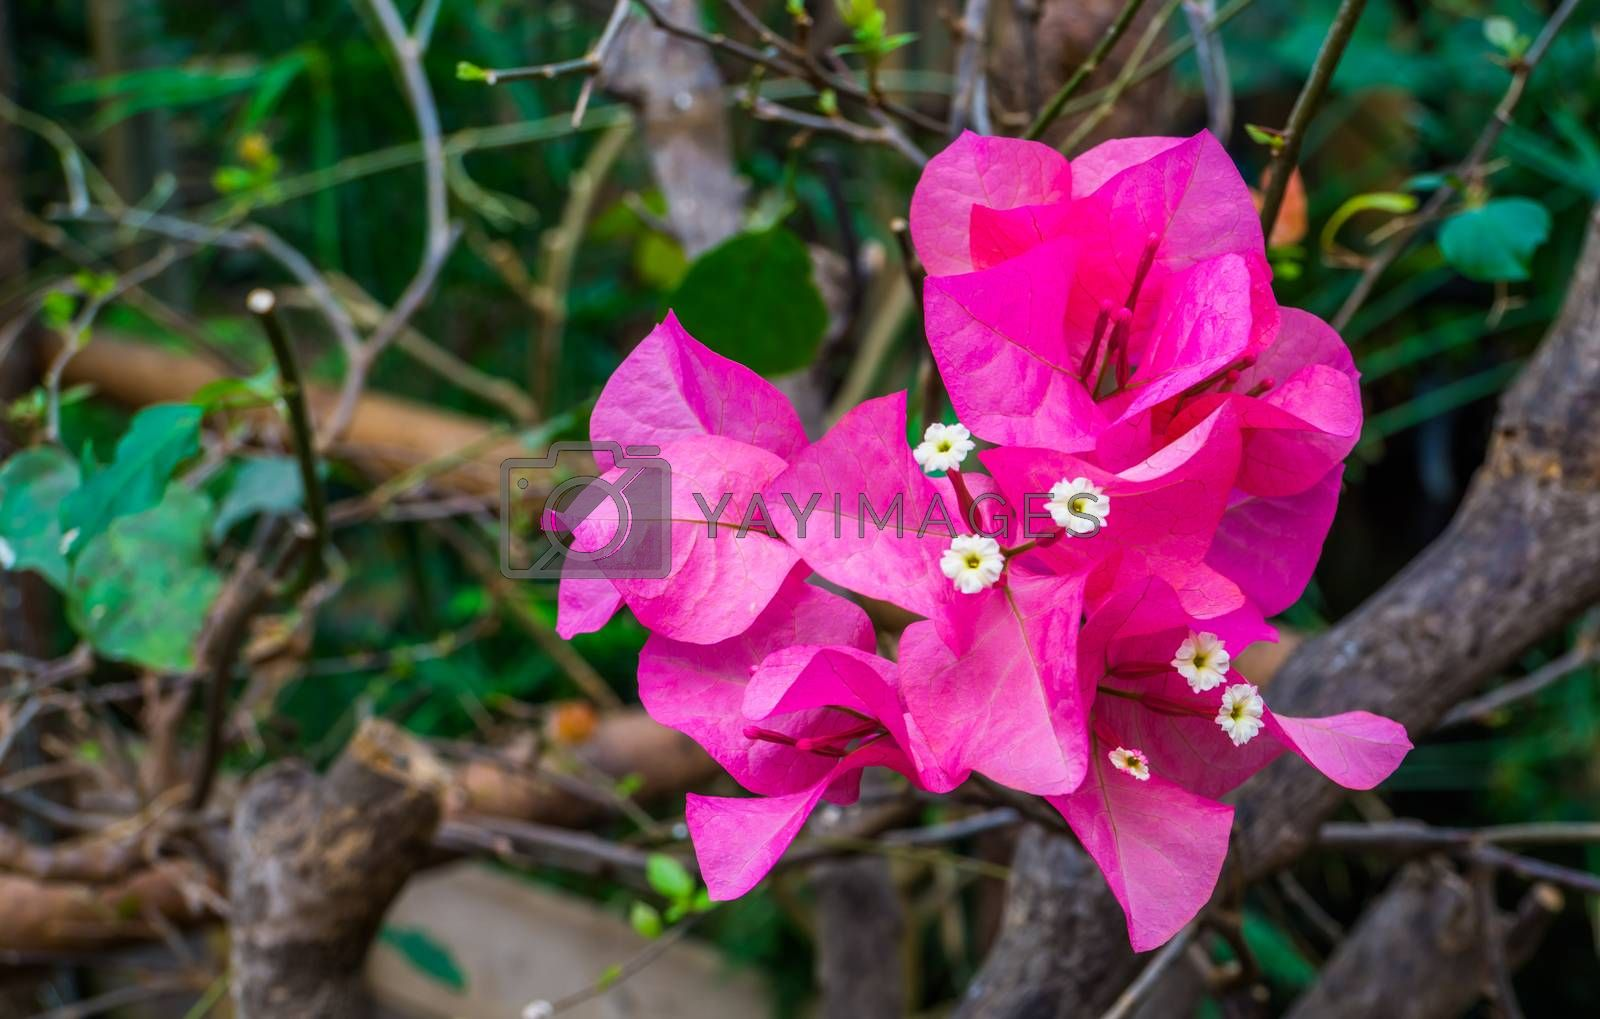 pink bougainvillea flowers on a tree branch in macro closeup, popular tropical garden plant, nature background by charlotte Bleijenberg